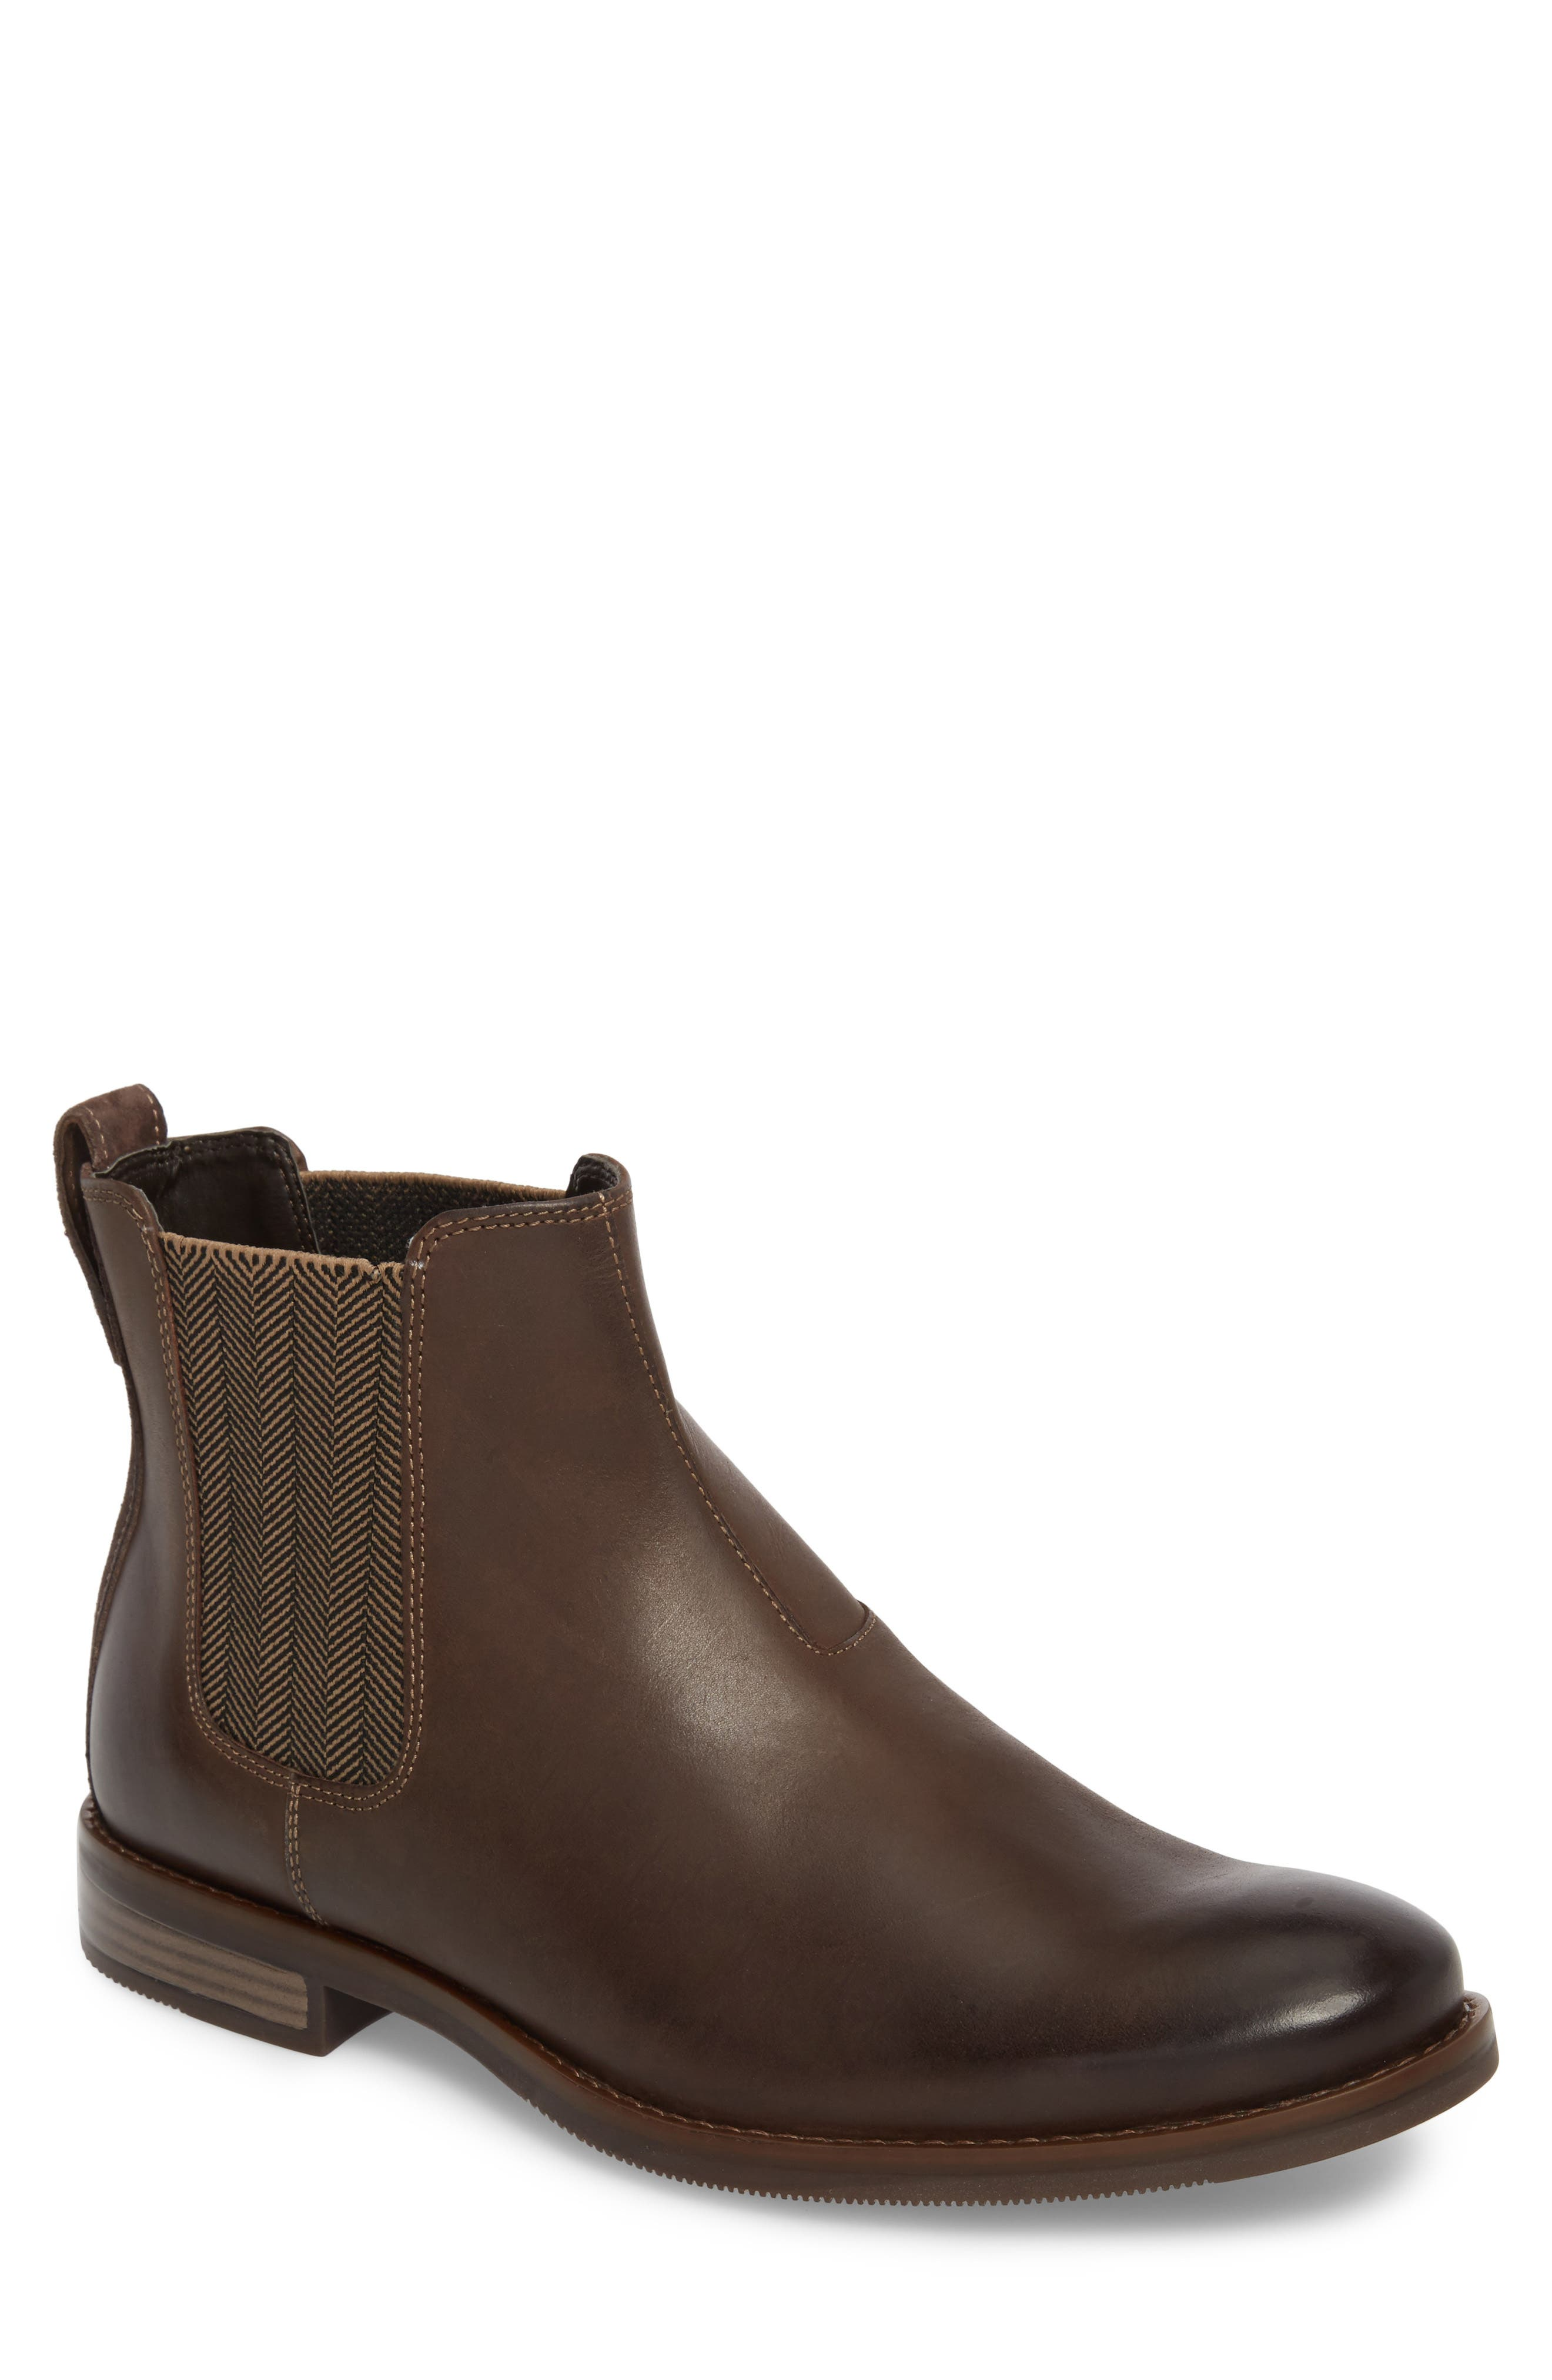 Wynstin Chelsea Boot,                         Main,                         color,